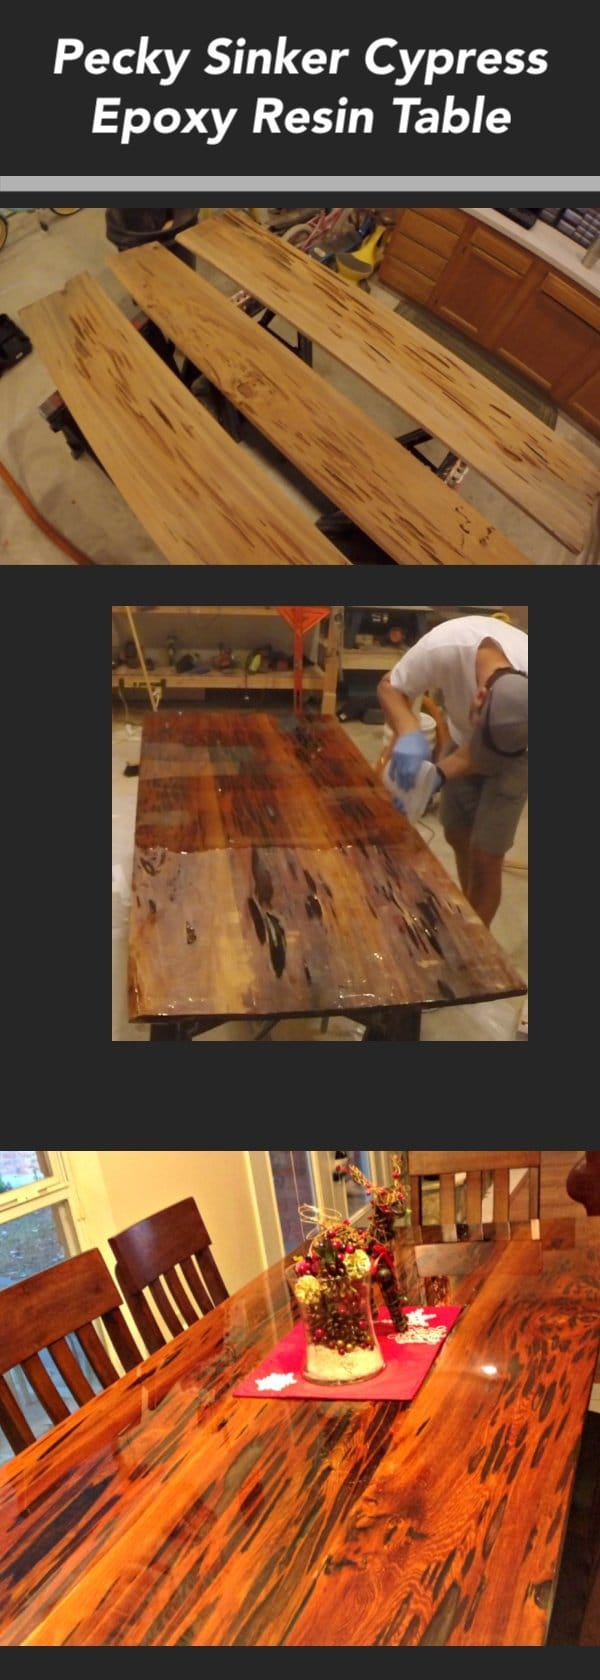 In this tutorial, I show you how to build an epoxy resin dining table using pecky sinker cypress wood.  Learn many resin tips and woodworking techniques that make this a DIY project for all skill levels.